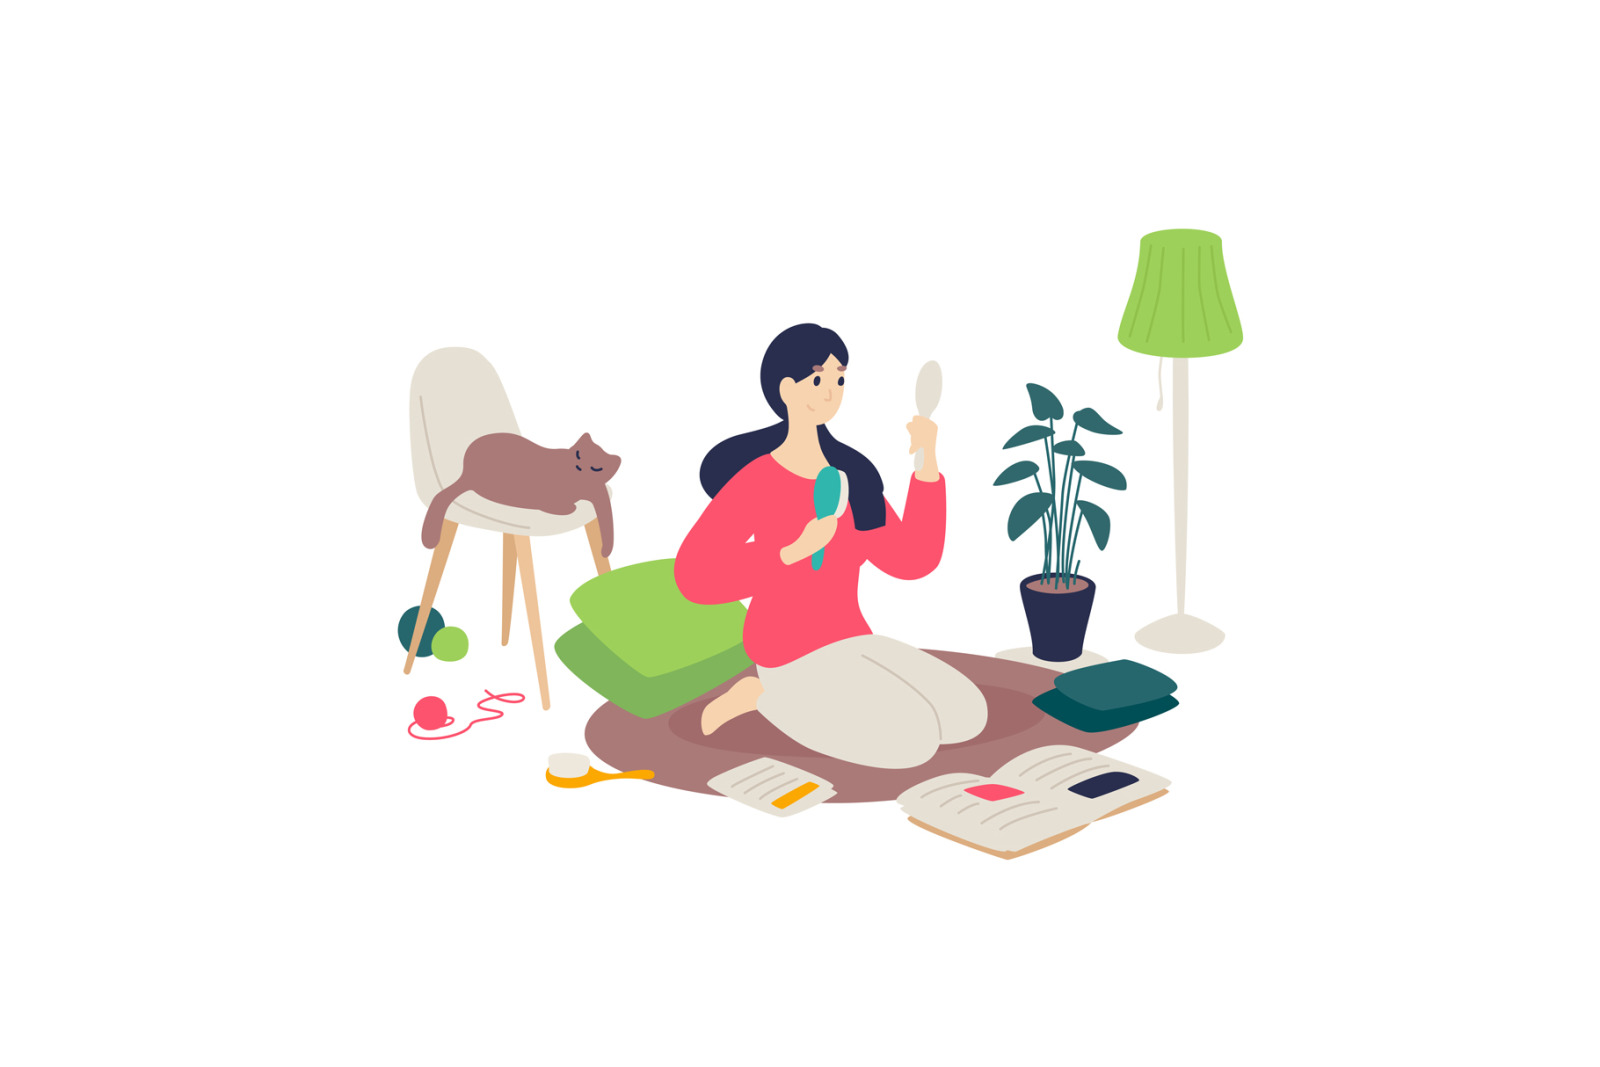 Illustrations on the topic of household chores